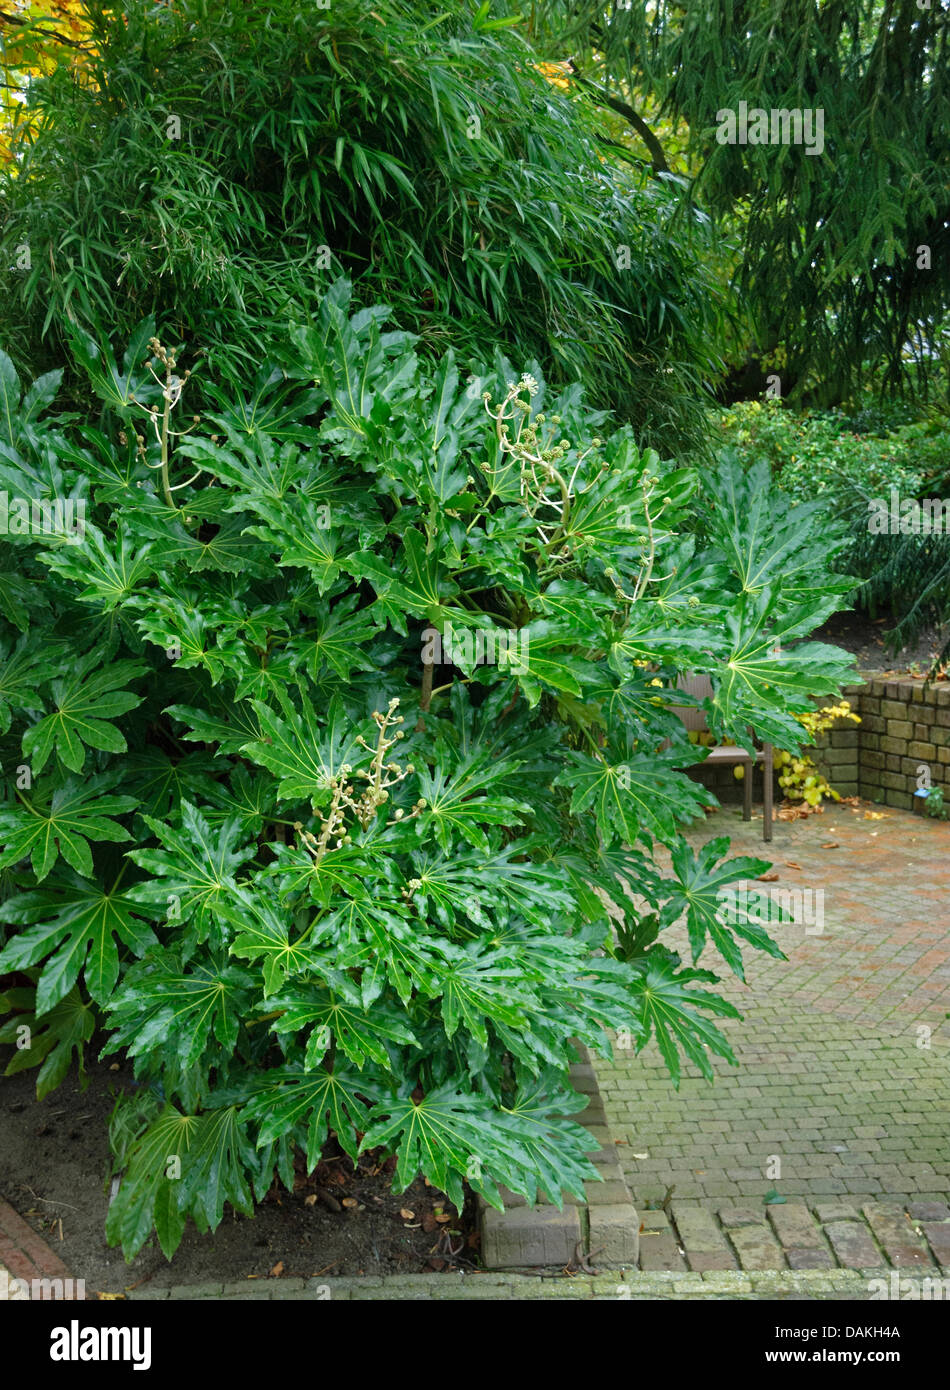 japanese aralia fatsia japonica in a garden netherlands stock photo royalty free image. Black Bedroom Furniture Sets. Home Design Ideas